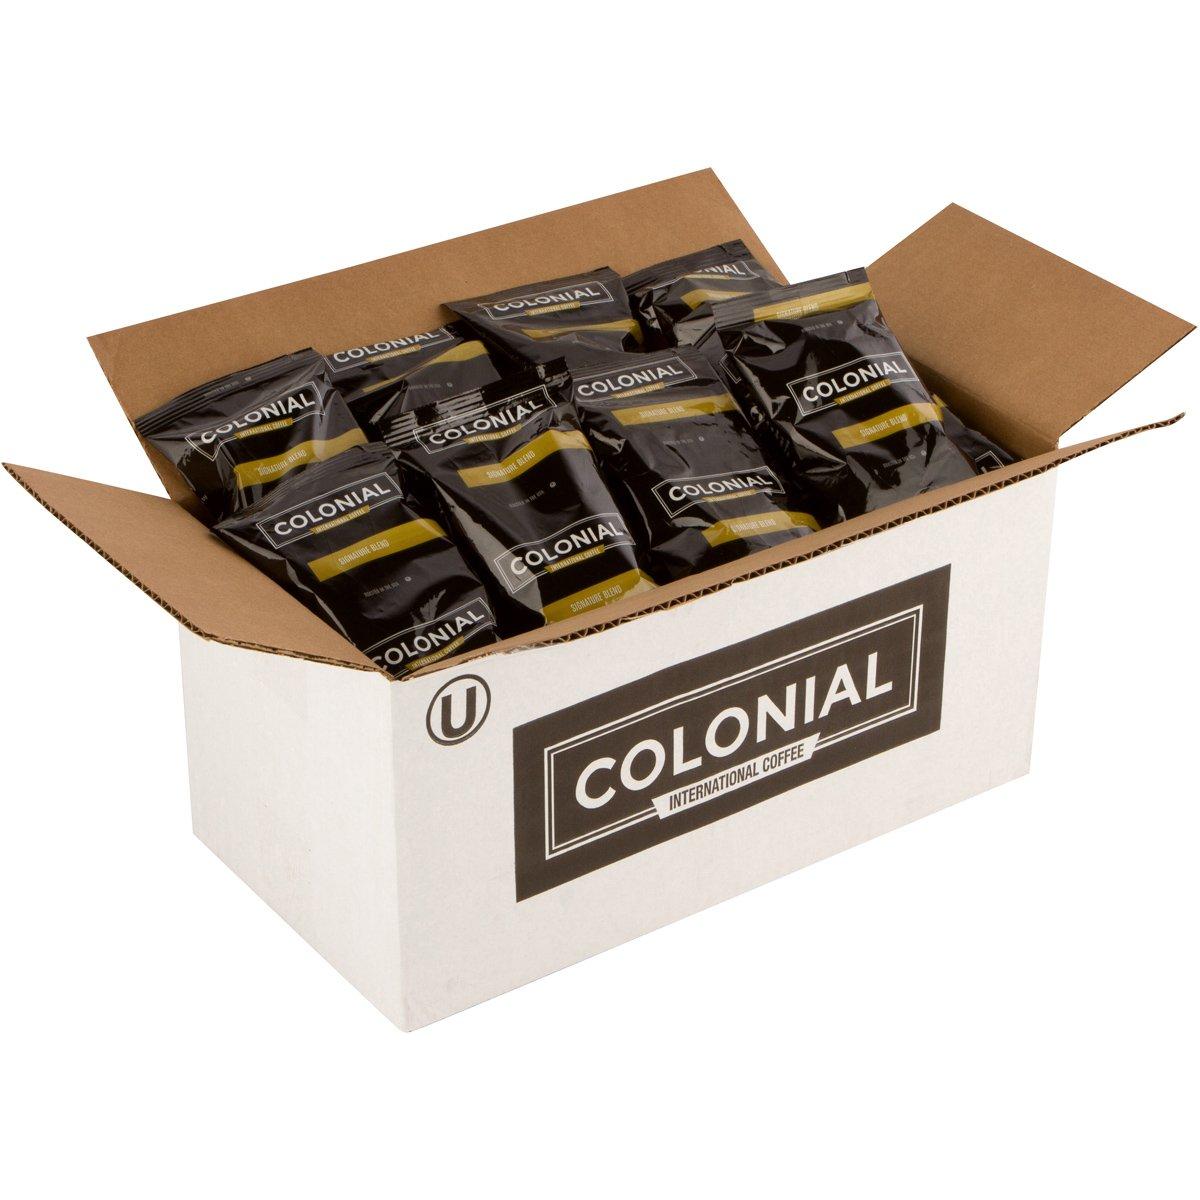 Colonial Coffee Portion Packs, Signature 'Breakfast' Blend, Medium Roast Ground, 2.5 oz./Bag, 32 Count box, Bulk Fractional Pouches for Single Pot Drip Brewing